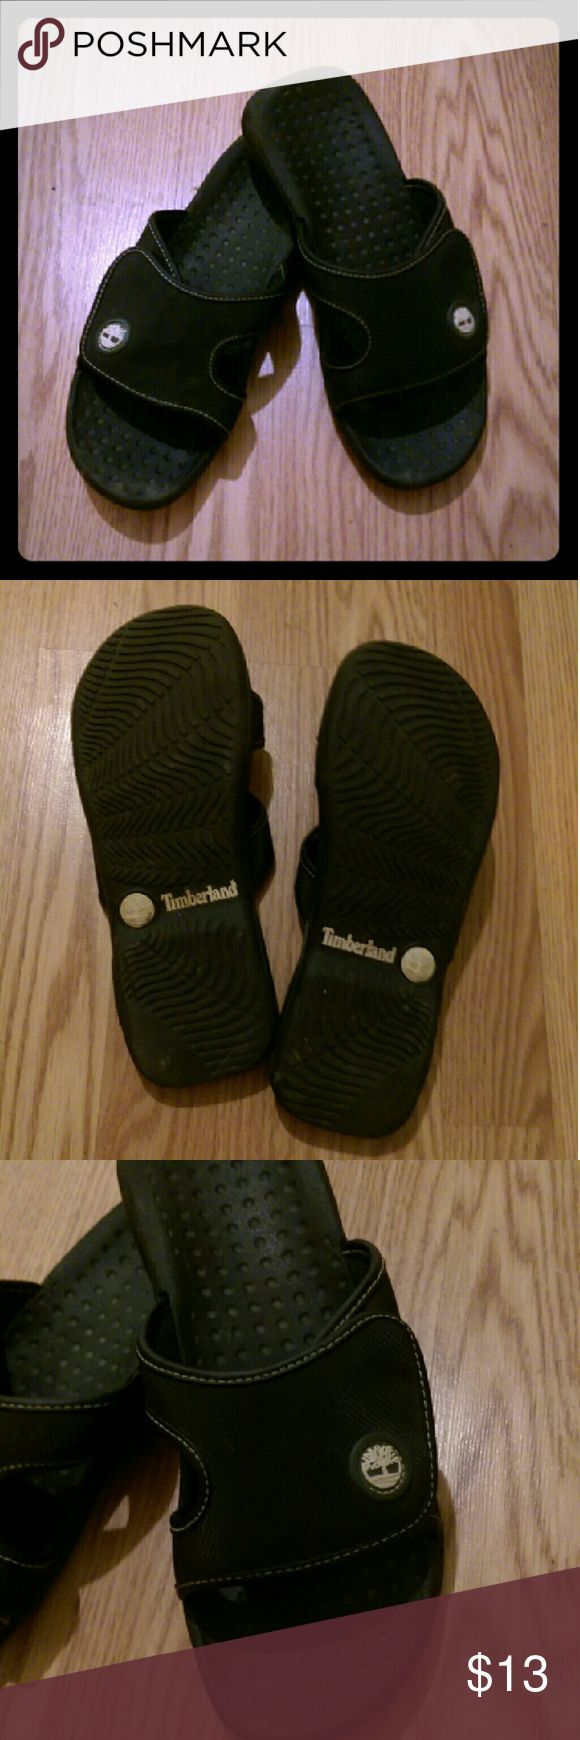 Men's Timberland Velcro Sandals Size 10M Worn with love Timberland Shoes Sandals & Flip-Flops